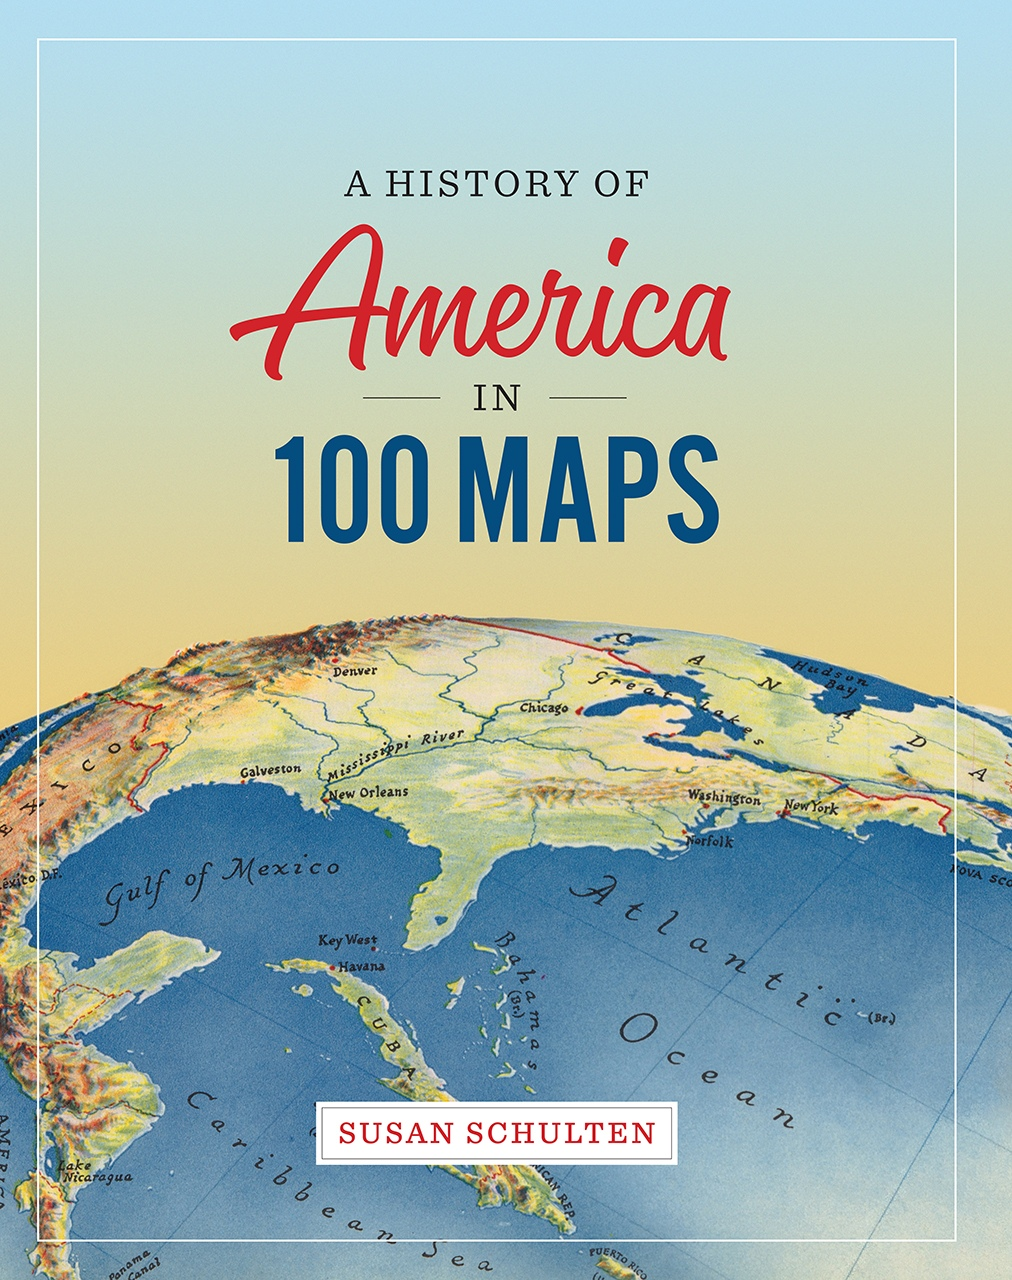 Susan Schulten – A History Of America In 100 Maps